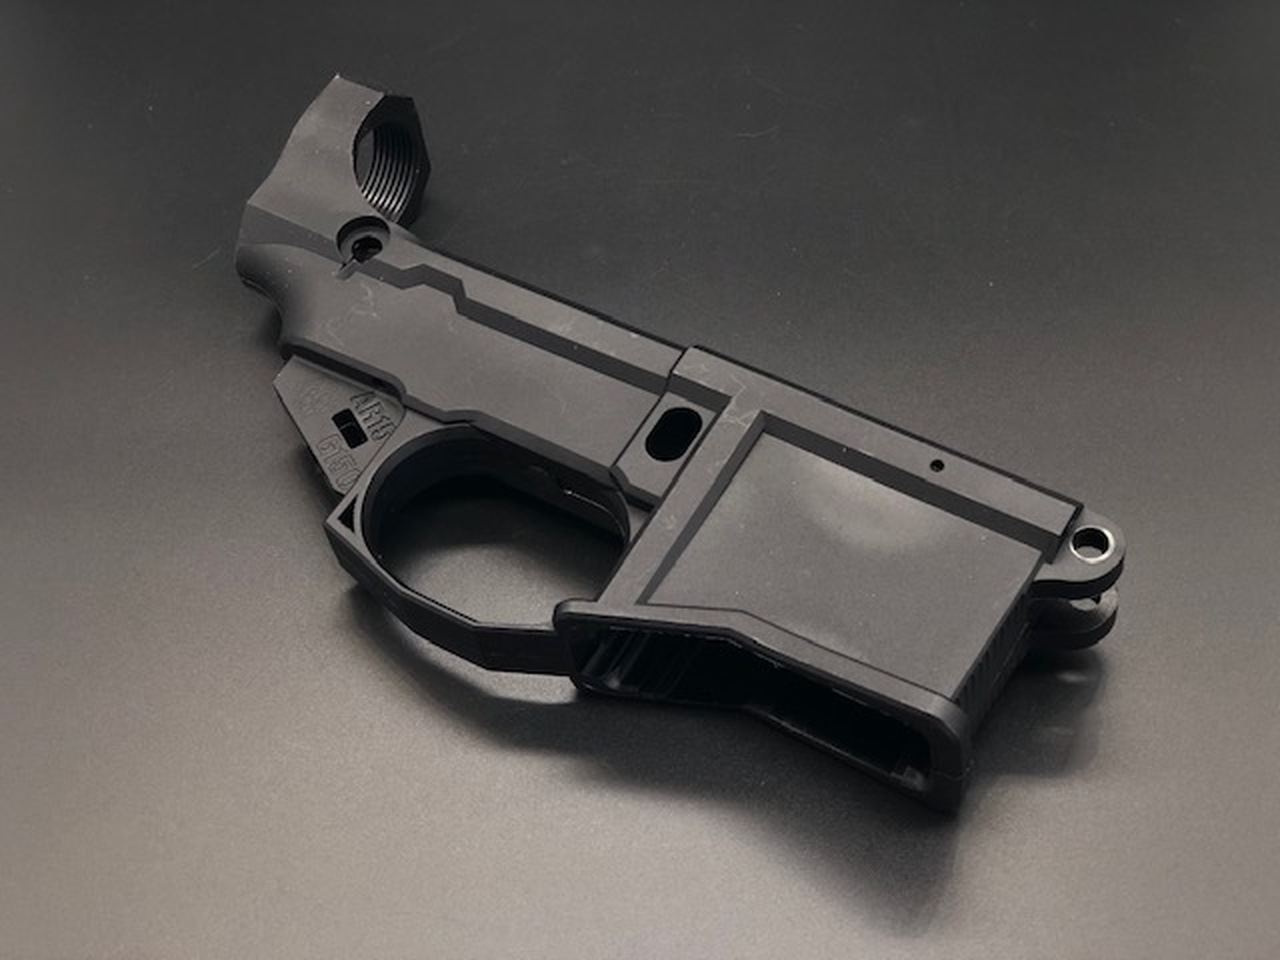 Polymer80 G150 (AR15) 80% Lower with Jig System in Black